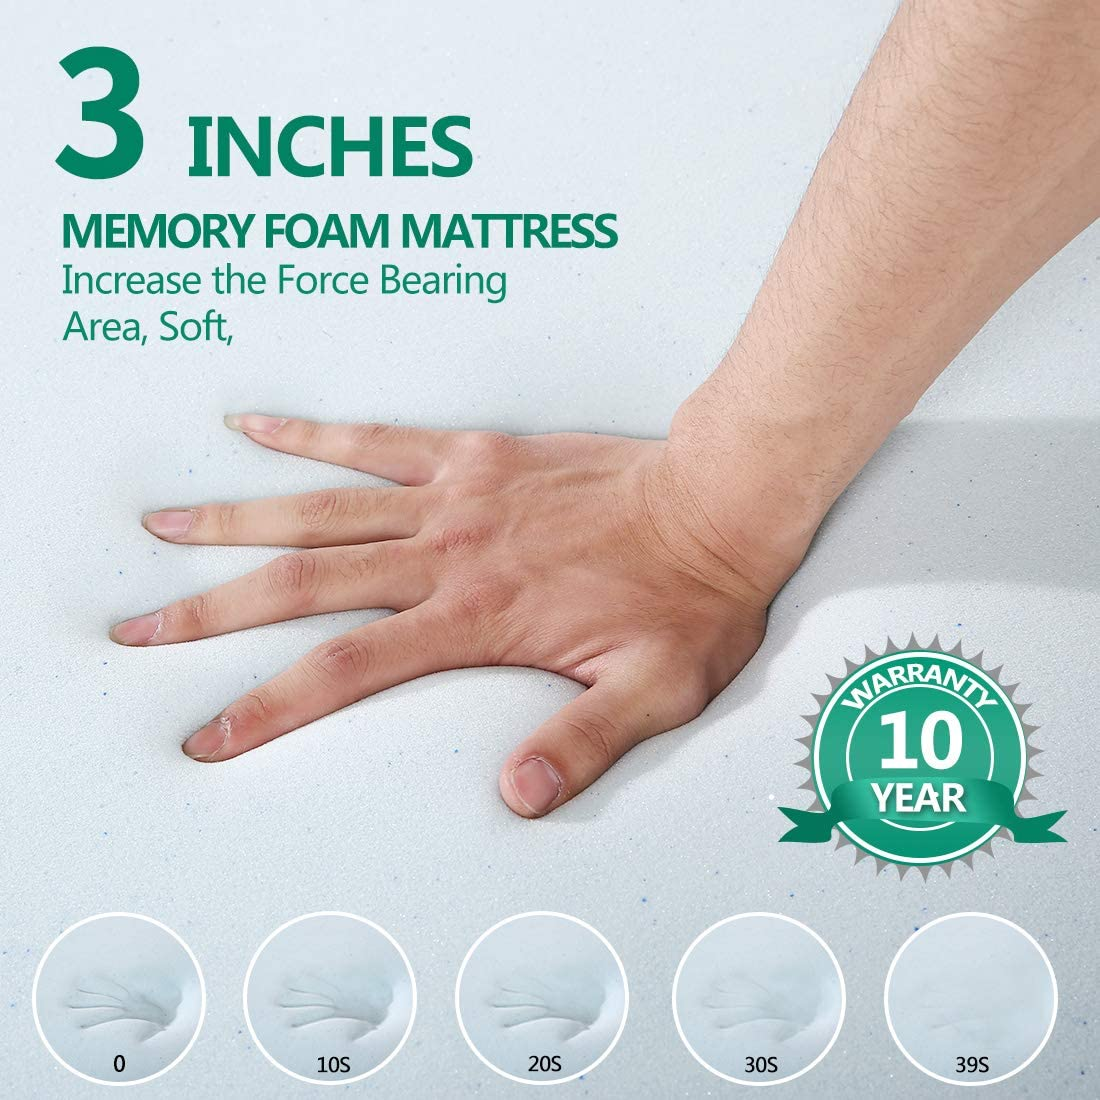 Edilly 3 Inch Memory Foam Mattress Pad Bed Topper Queen Size,Aviation Grade Material,Removable Hypoallergenic Soft Cover Comfort Body Support /& Pressure Relief,10 Year Warranty